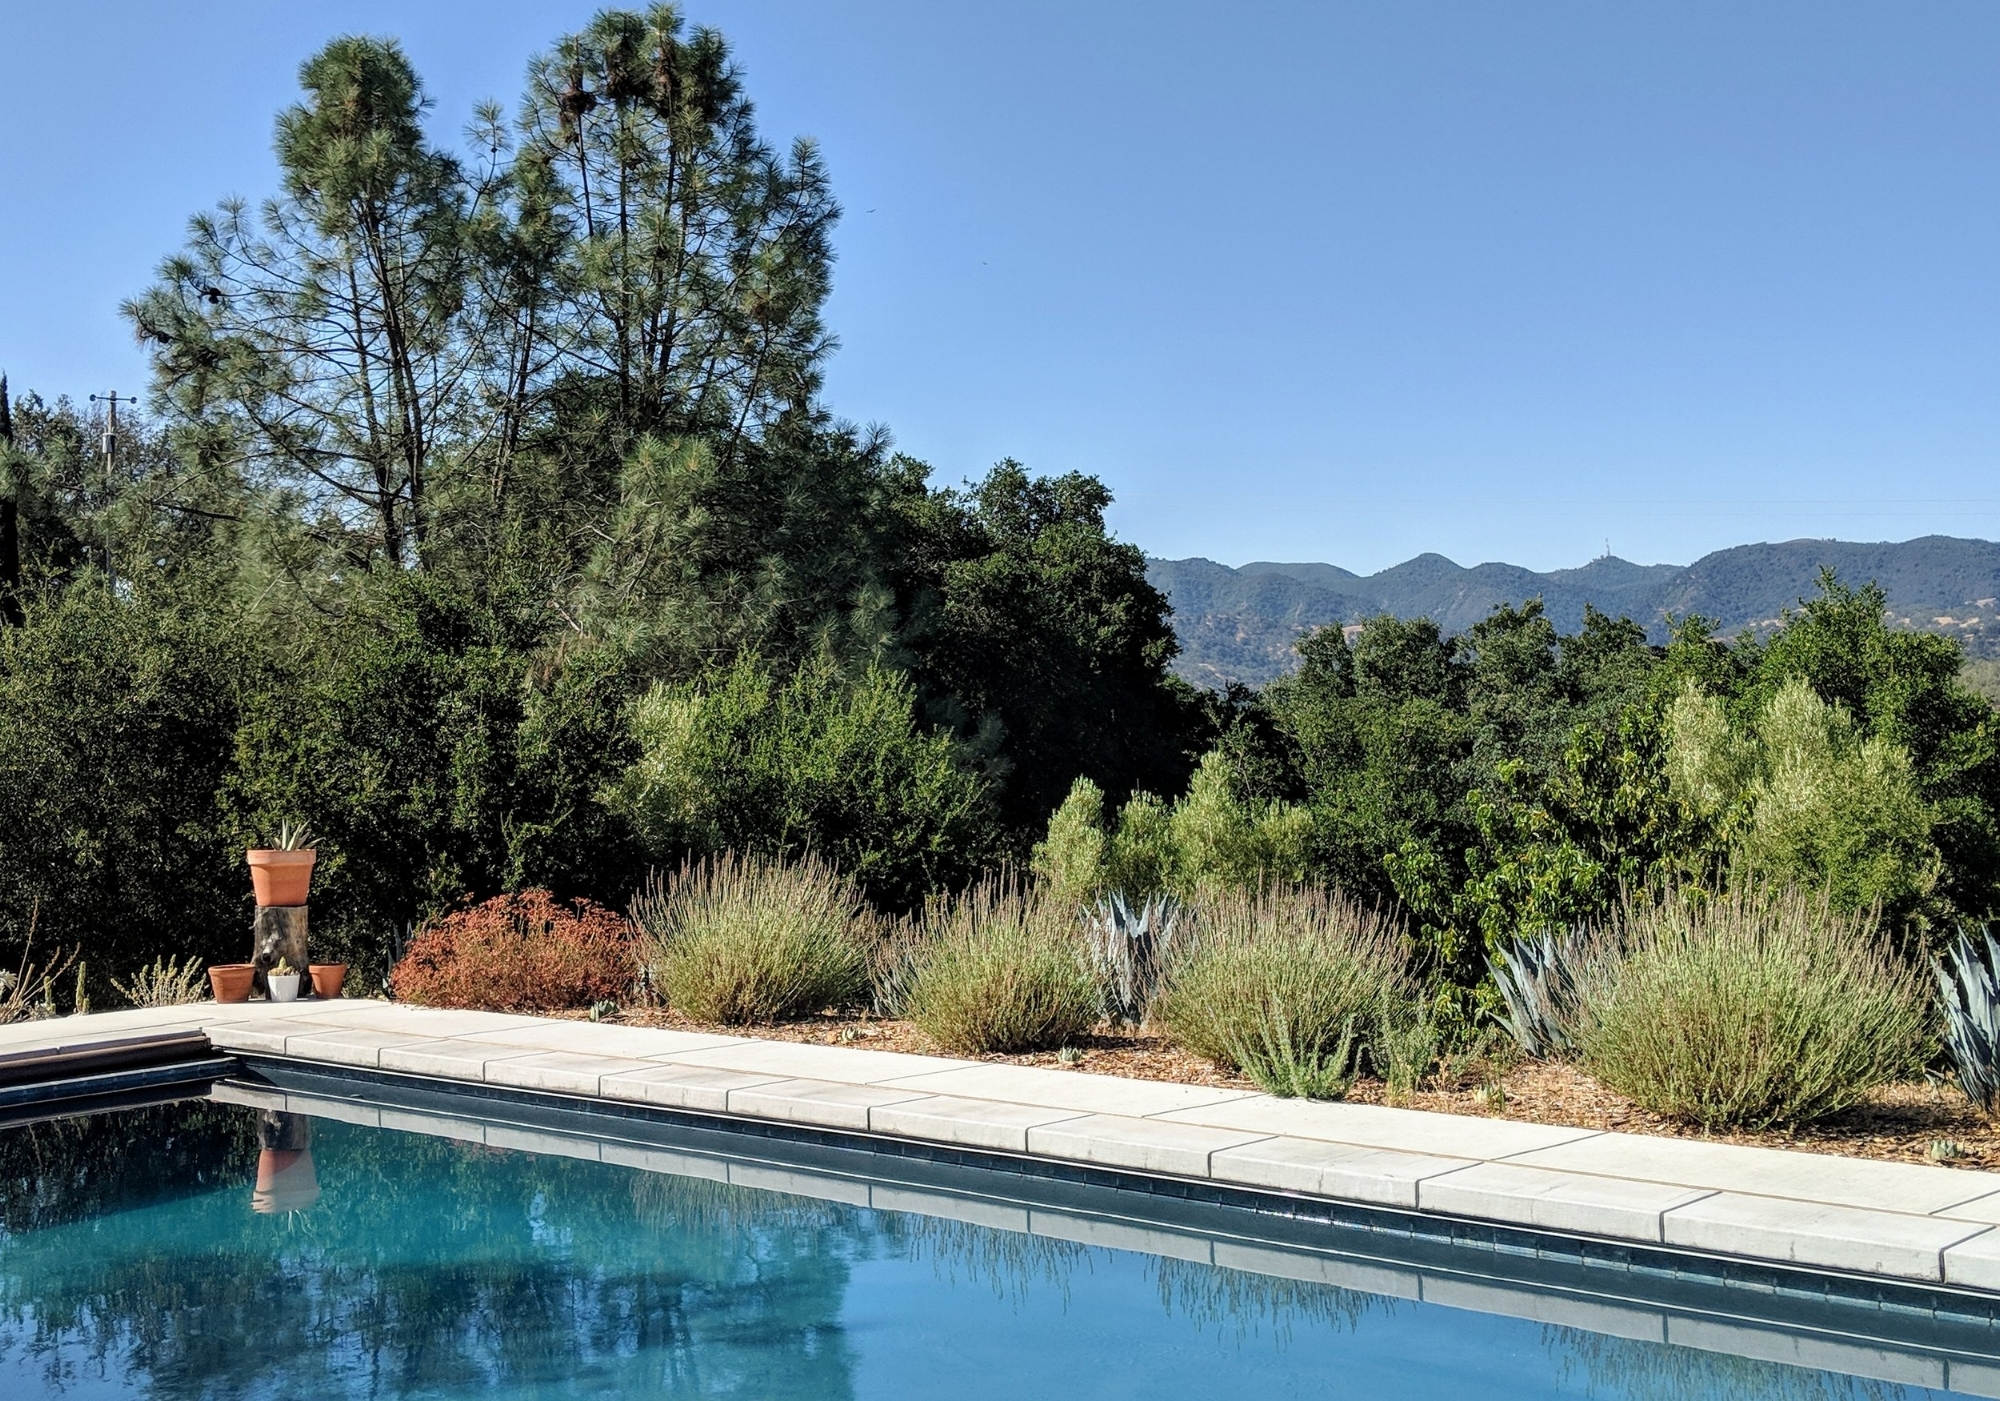 California Yoga Retreats On The Central Coast Yoga Hiking Wellness And Pilates Retreats